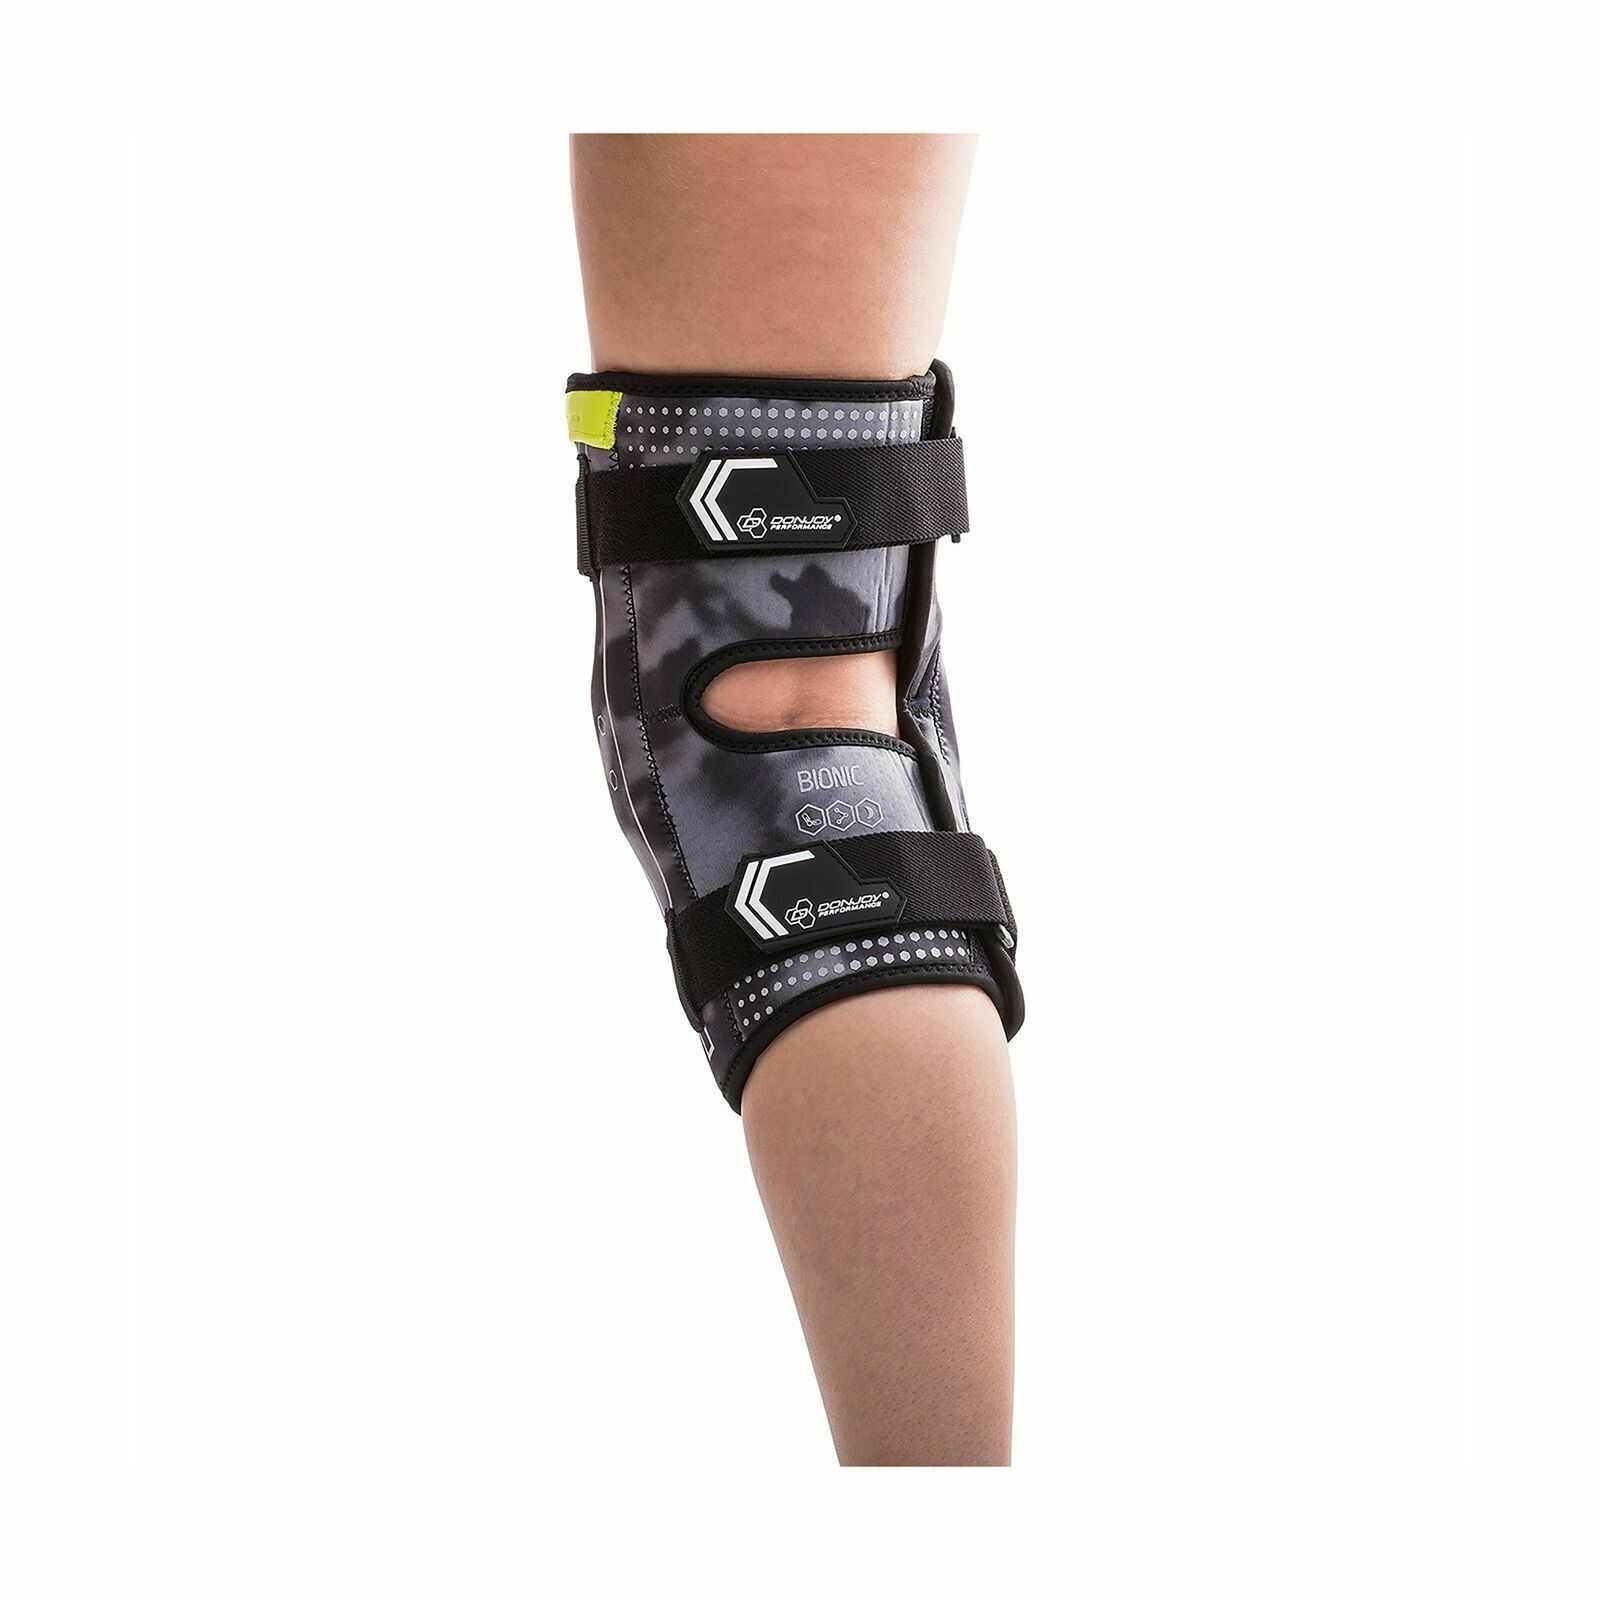 f4bf822170 DonJoy Performance Bionic Knee Brace – Hinged, Adjustable Patella Support,  XL